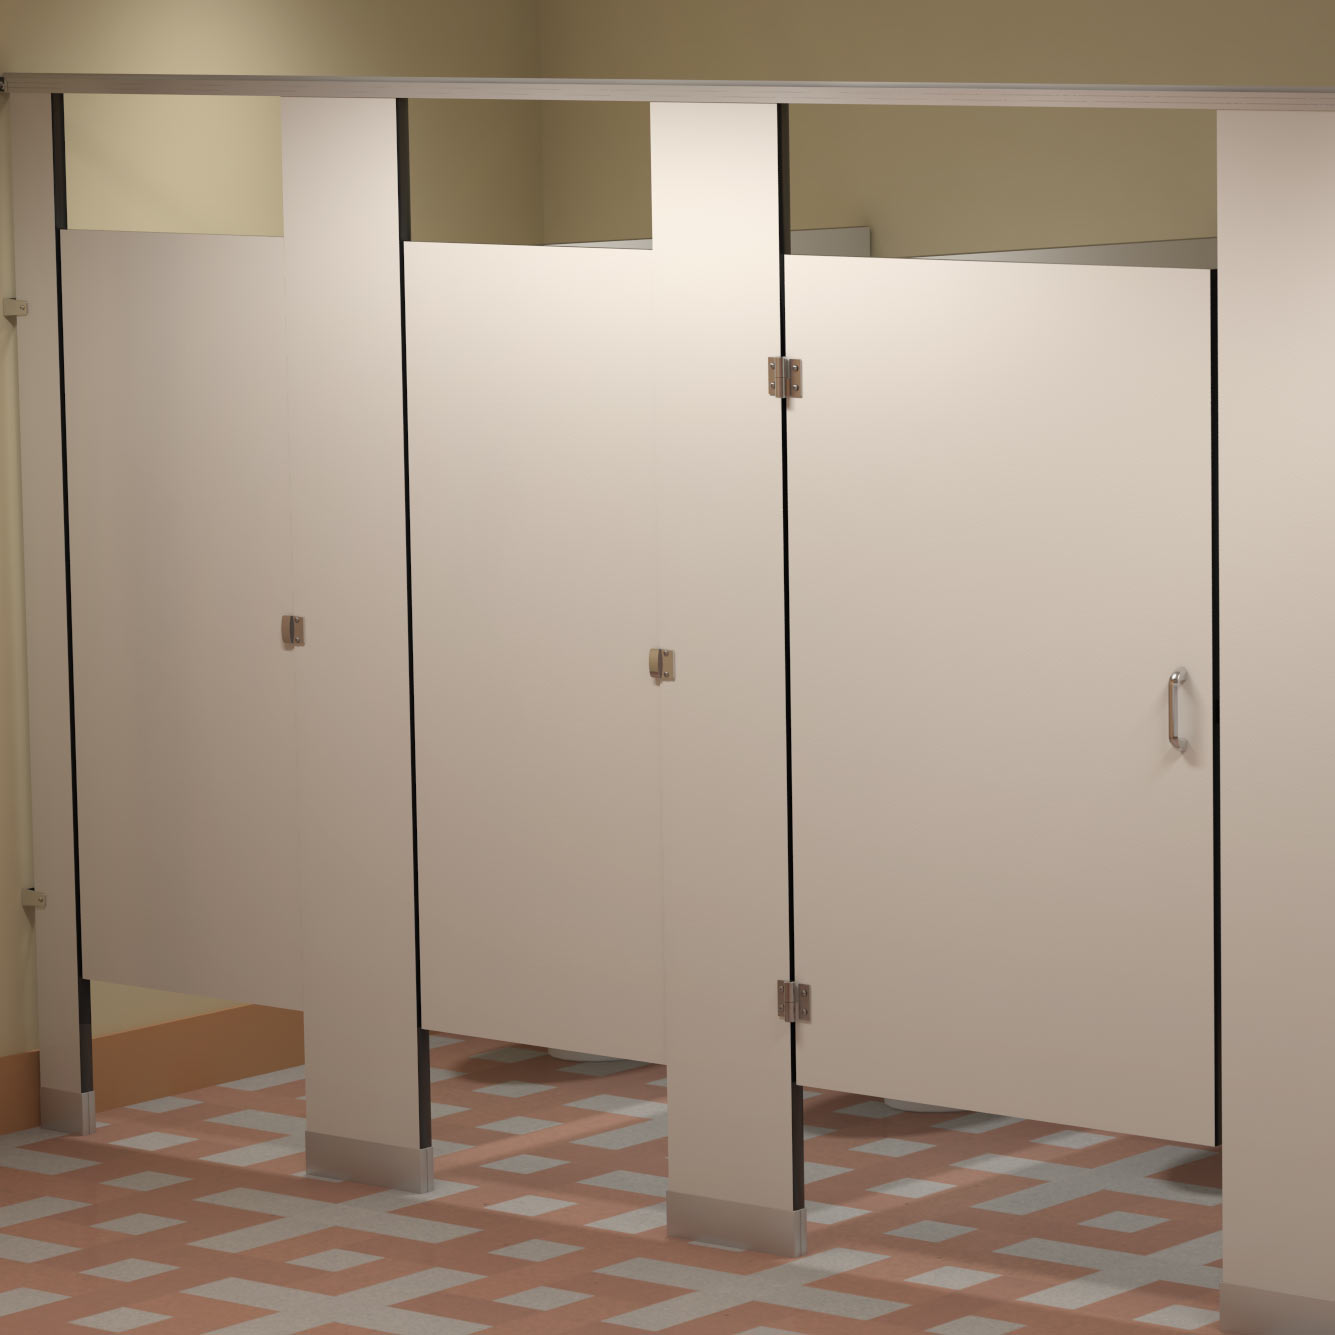 Commercial Restroom Partitions Shower Stalls Accessories - Partitions for bathroom stalls